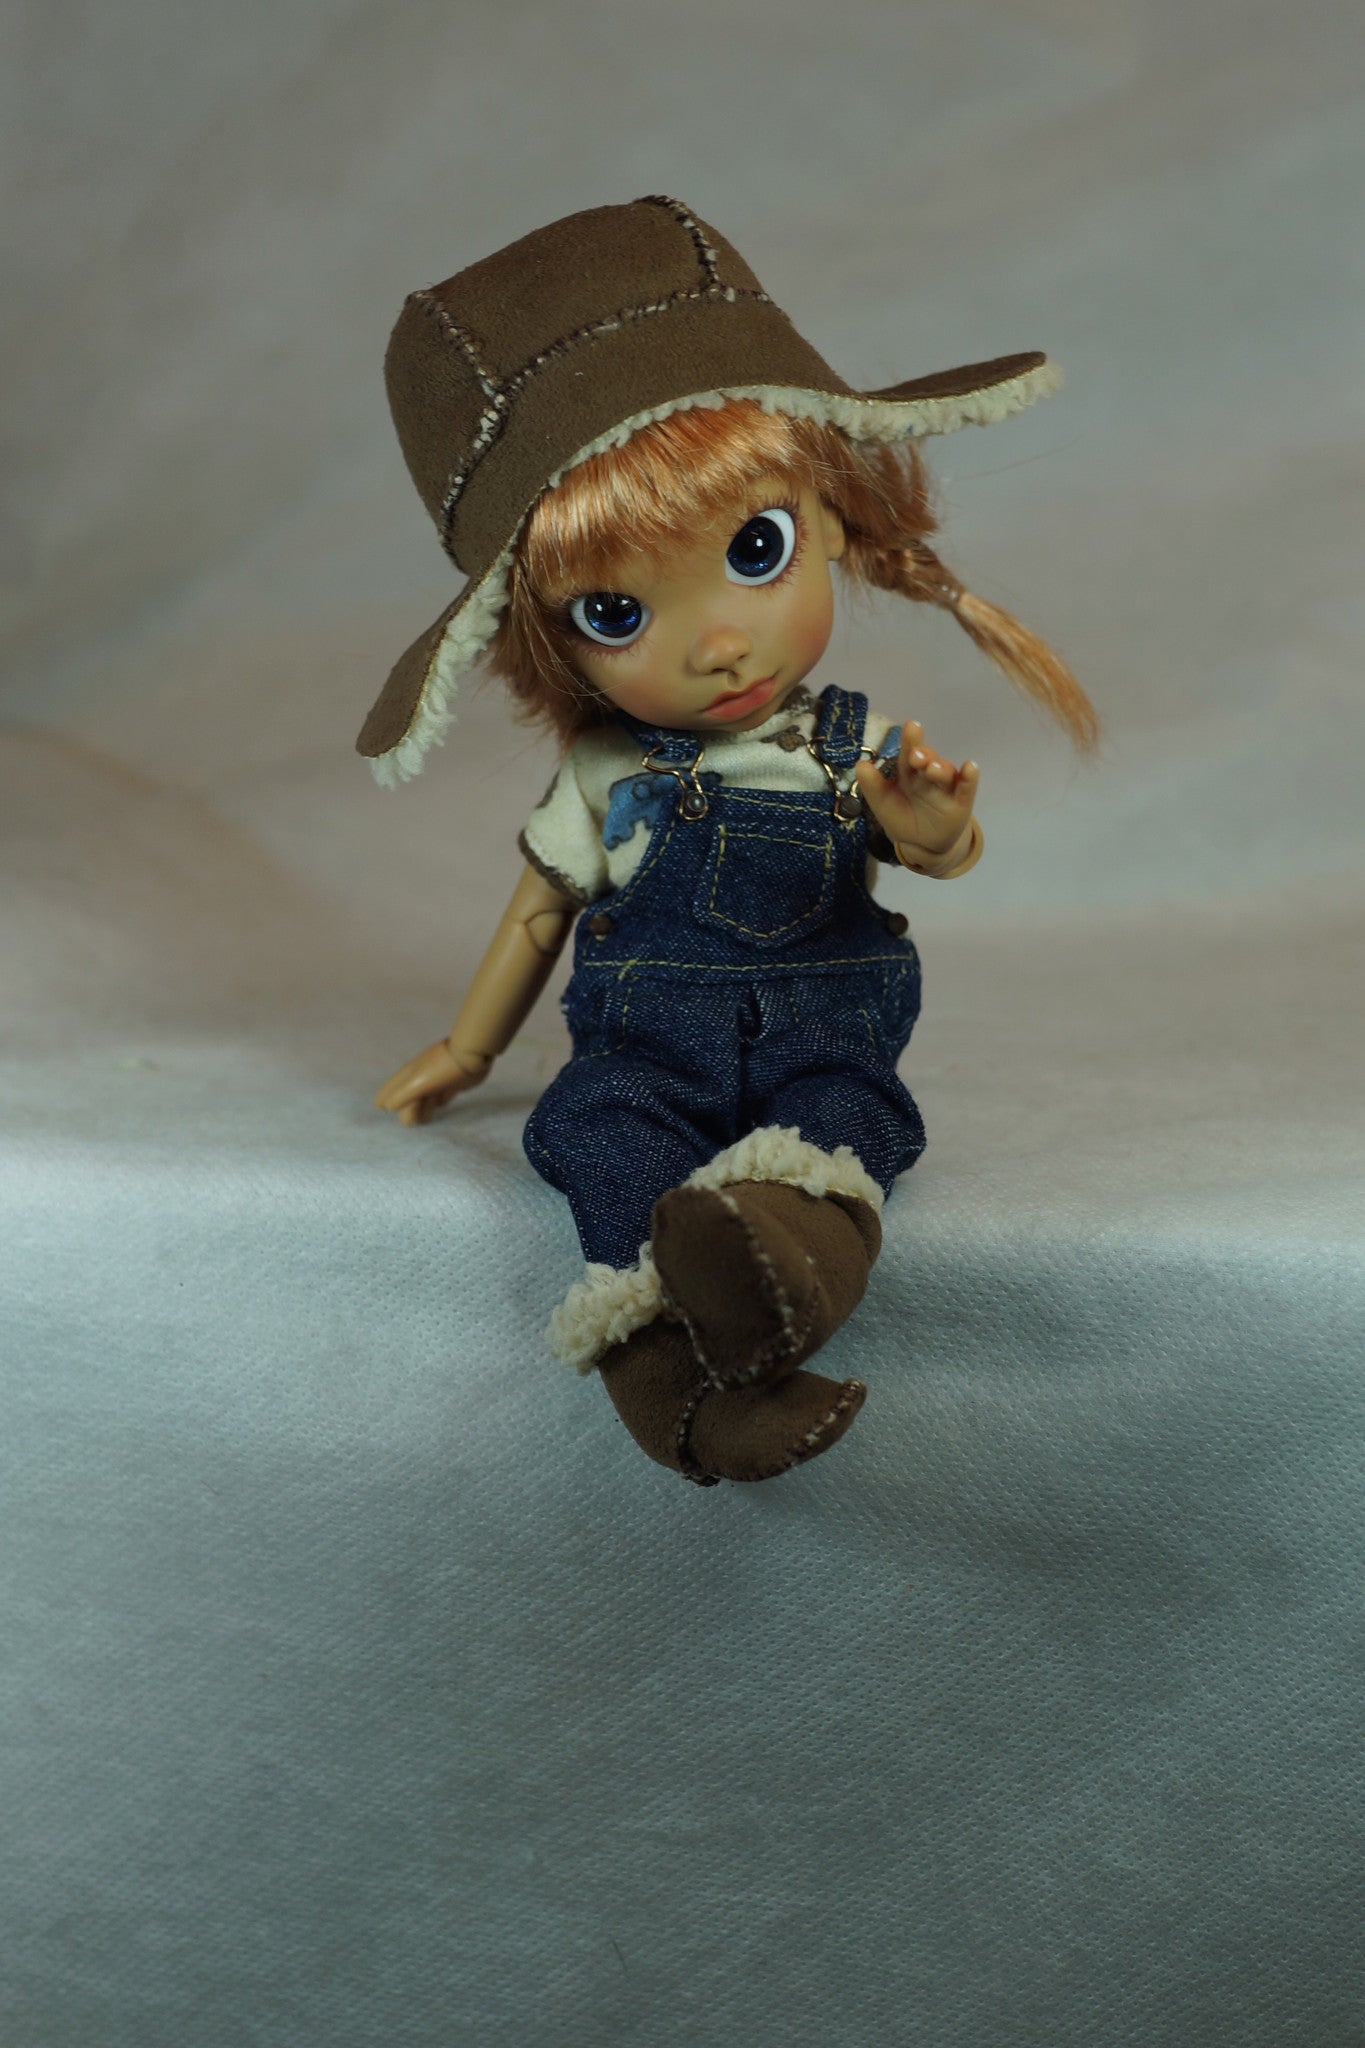 Tiny Tomboy by Bo Bergemann - Sold